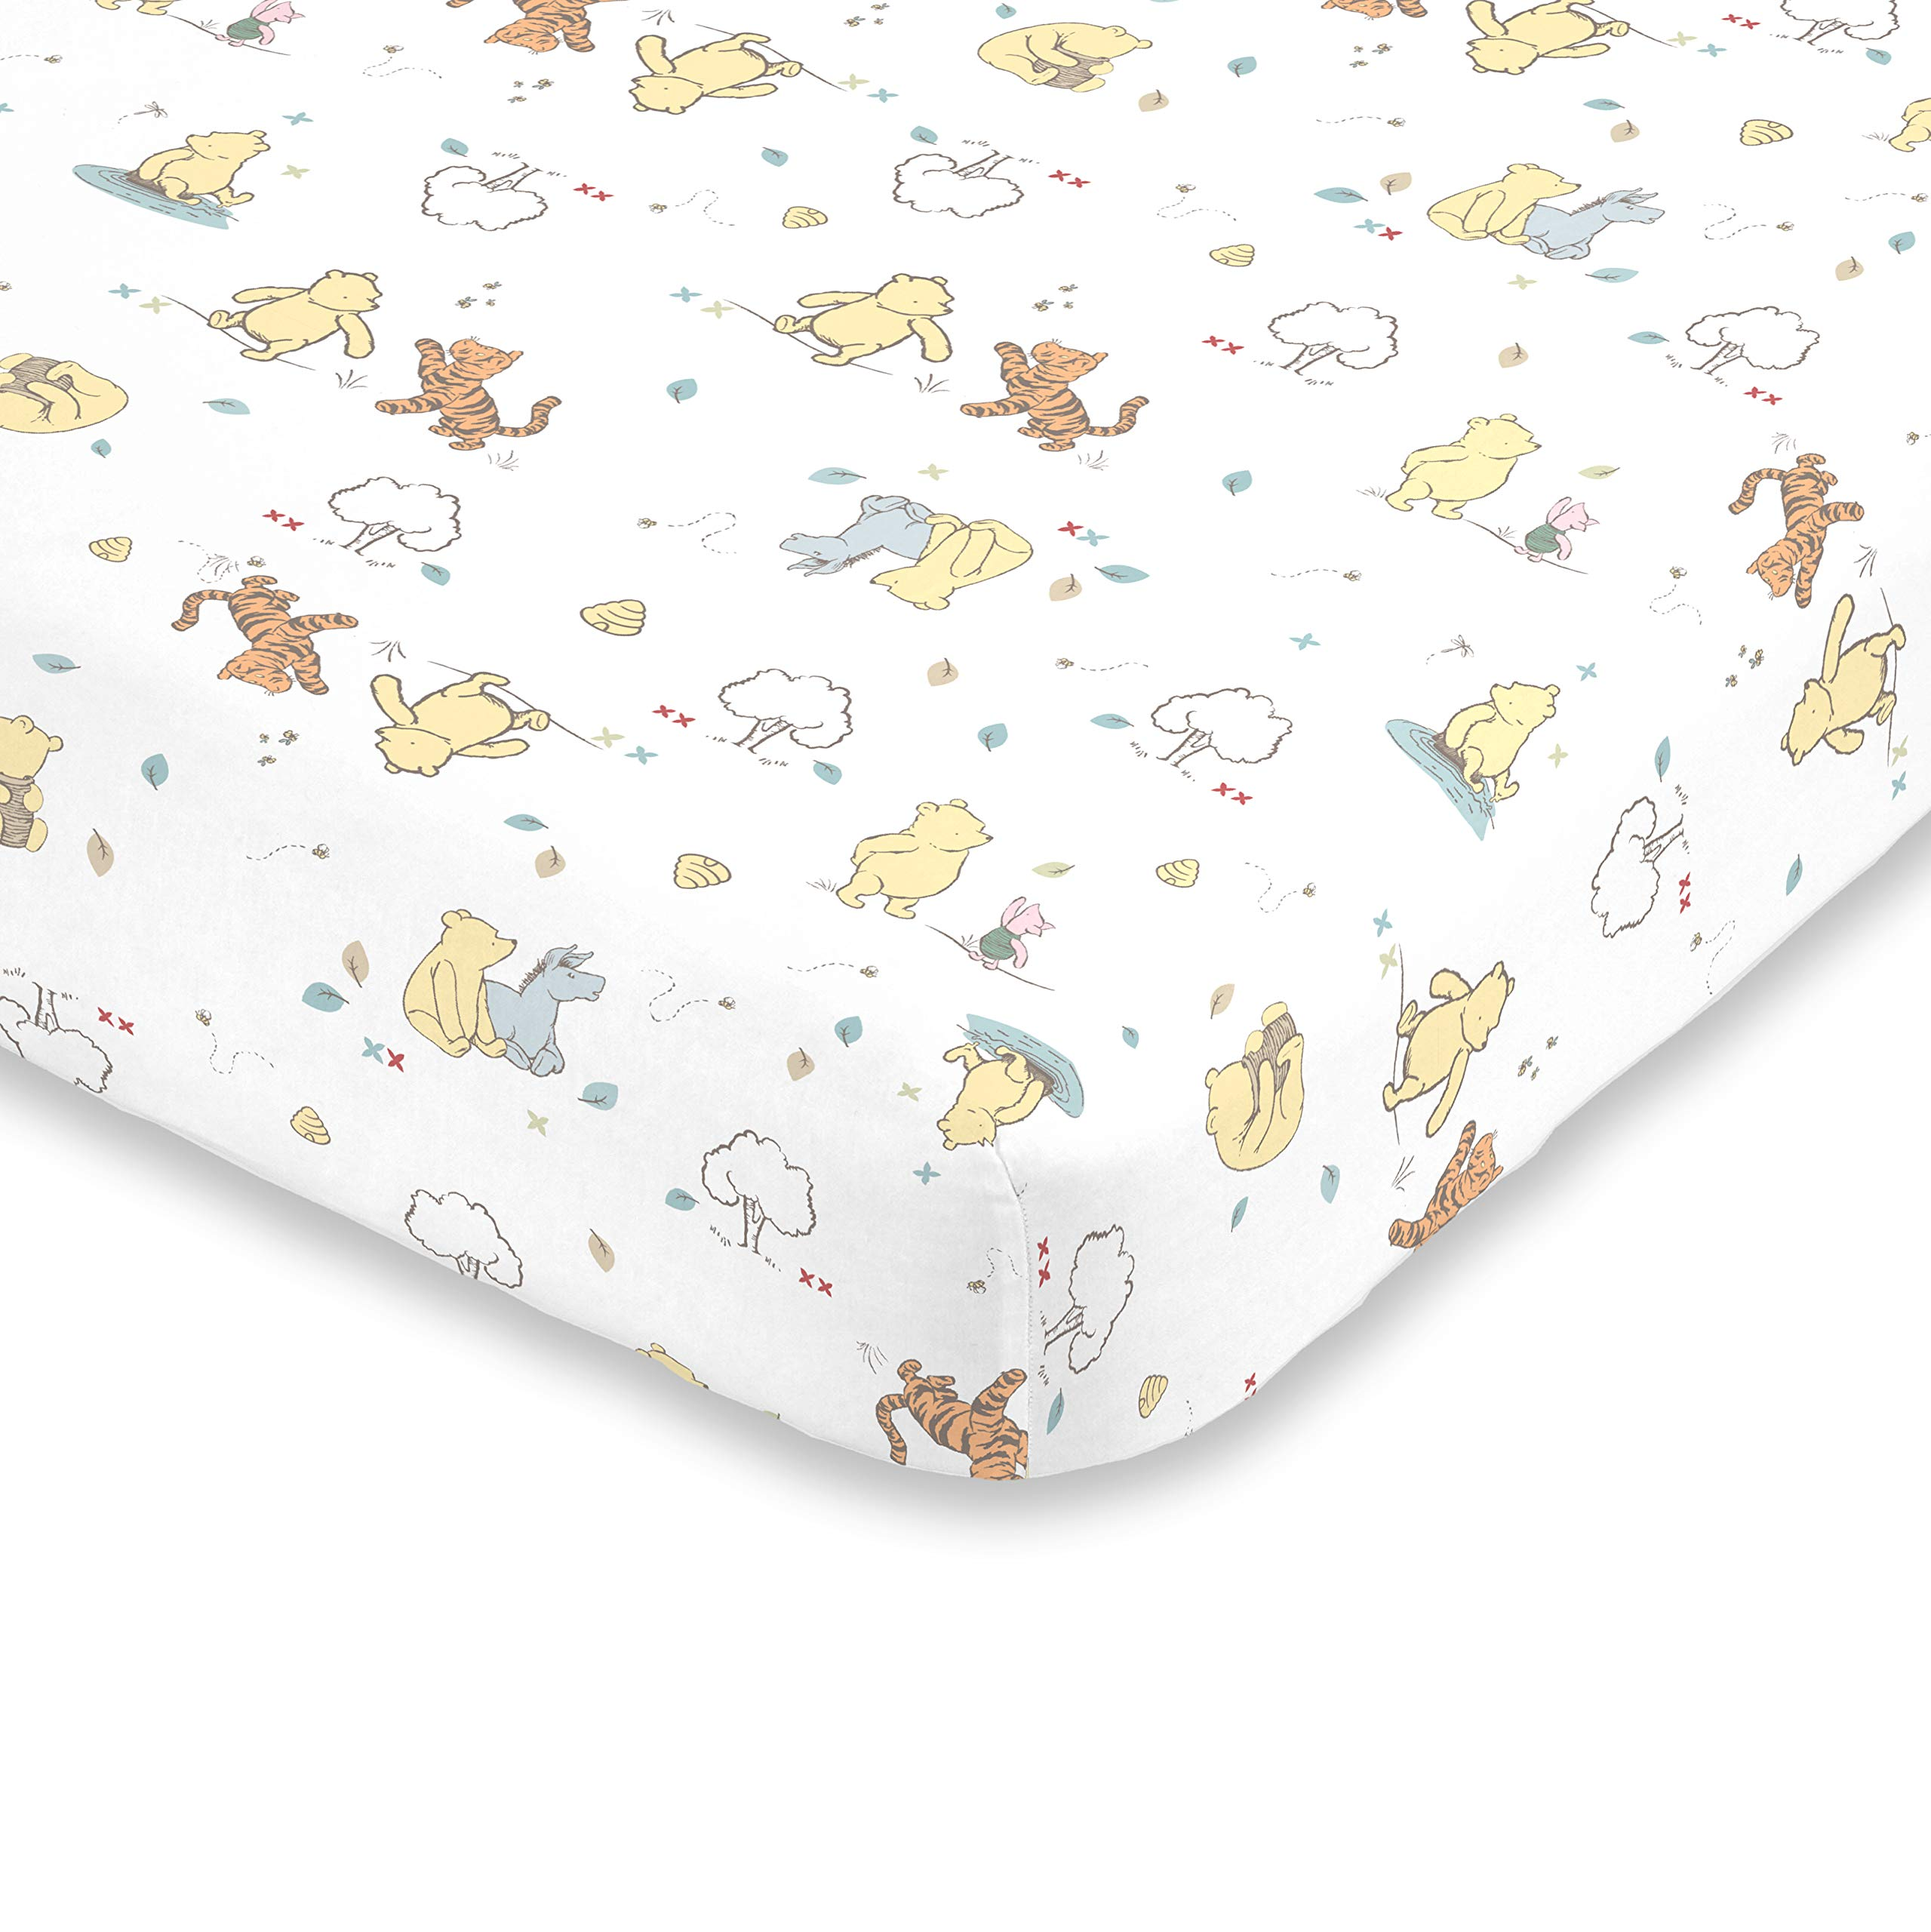 Disney Winnie The Pooh Classic Pooh 100% Cotton Fitted Crib Sheet, Ivory, Butter, Aqua, Orange by Disney (Image #1)